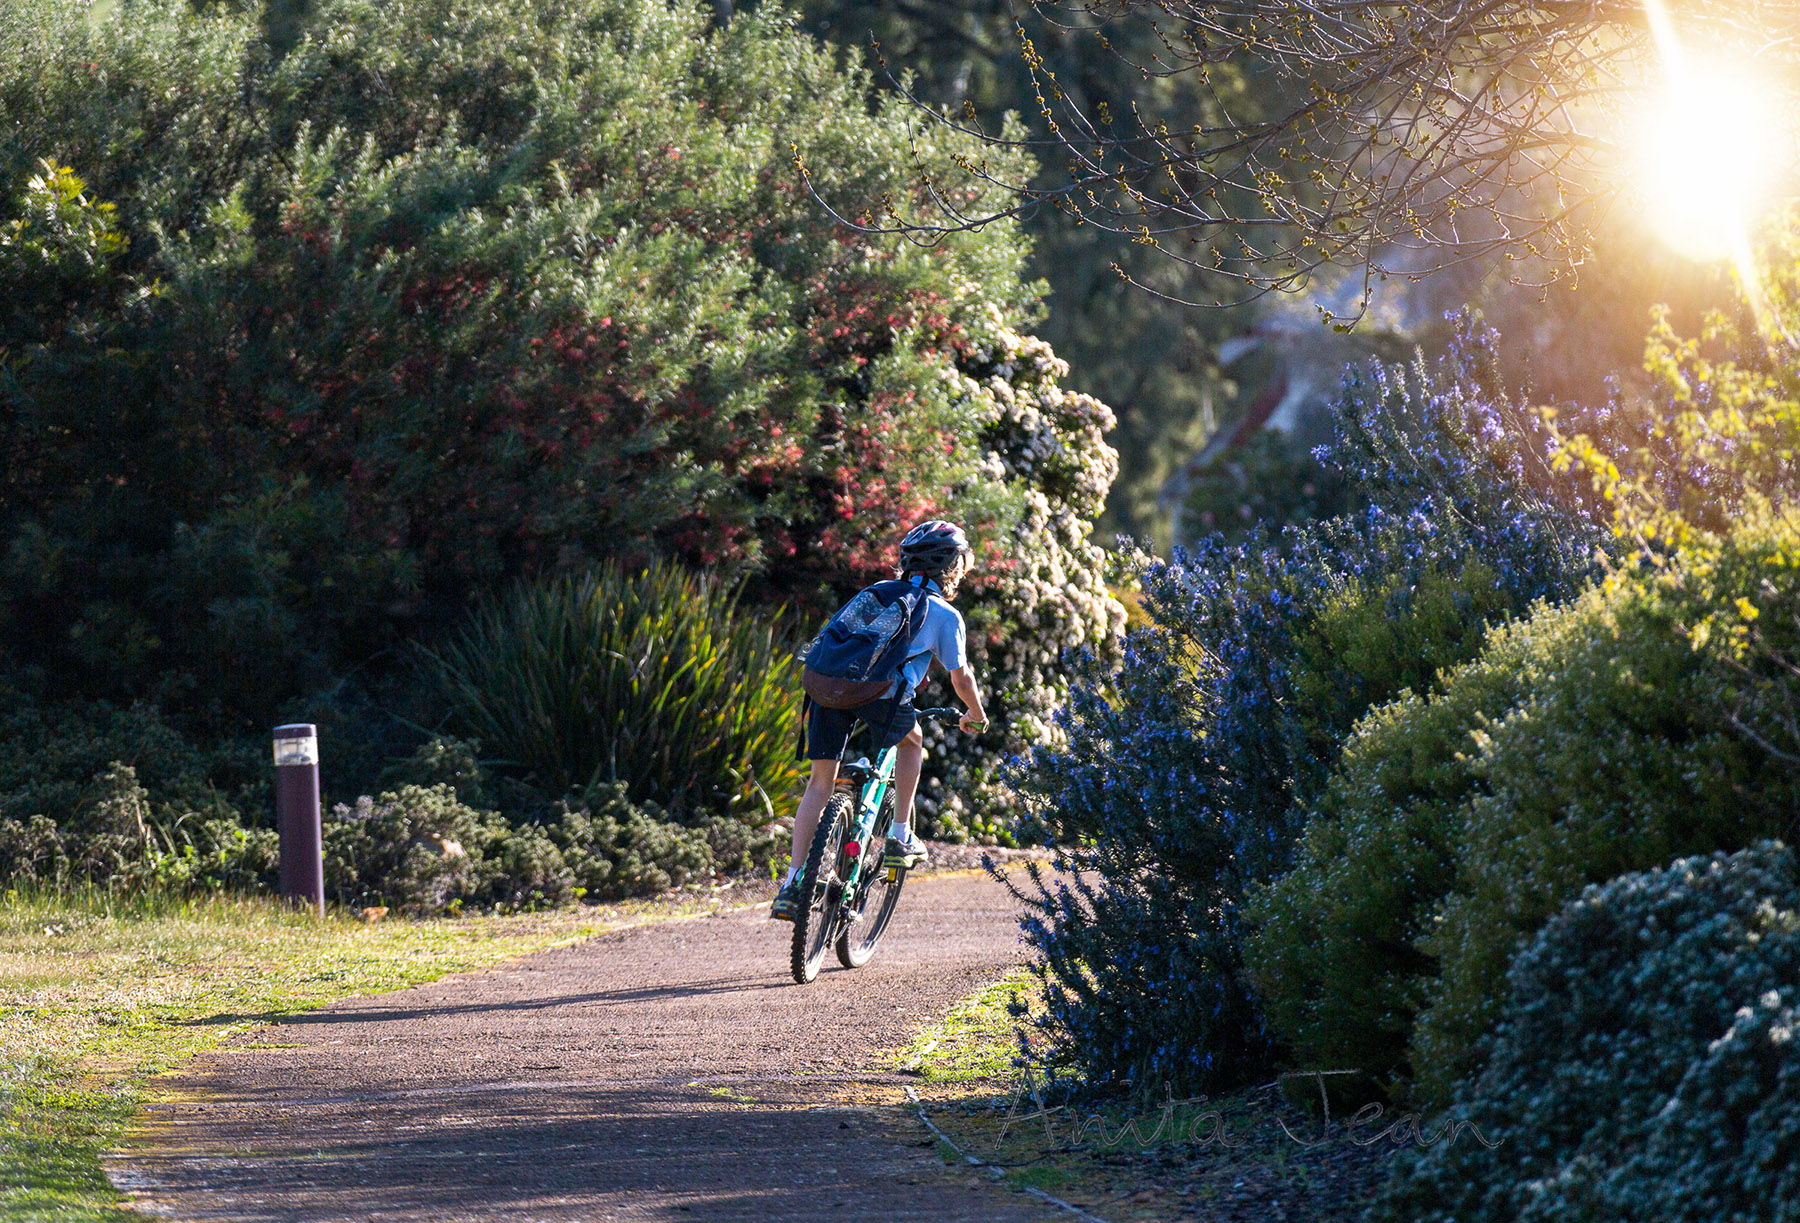 Photo of Schoolboy riding his bike to school through a park in the small town of Darkan, Western Australia. He has a helmet on his head and his backpack on his back.